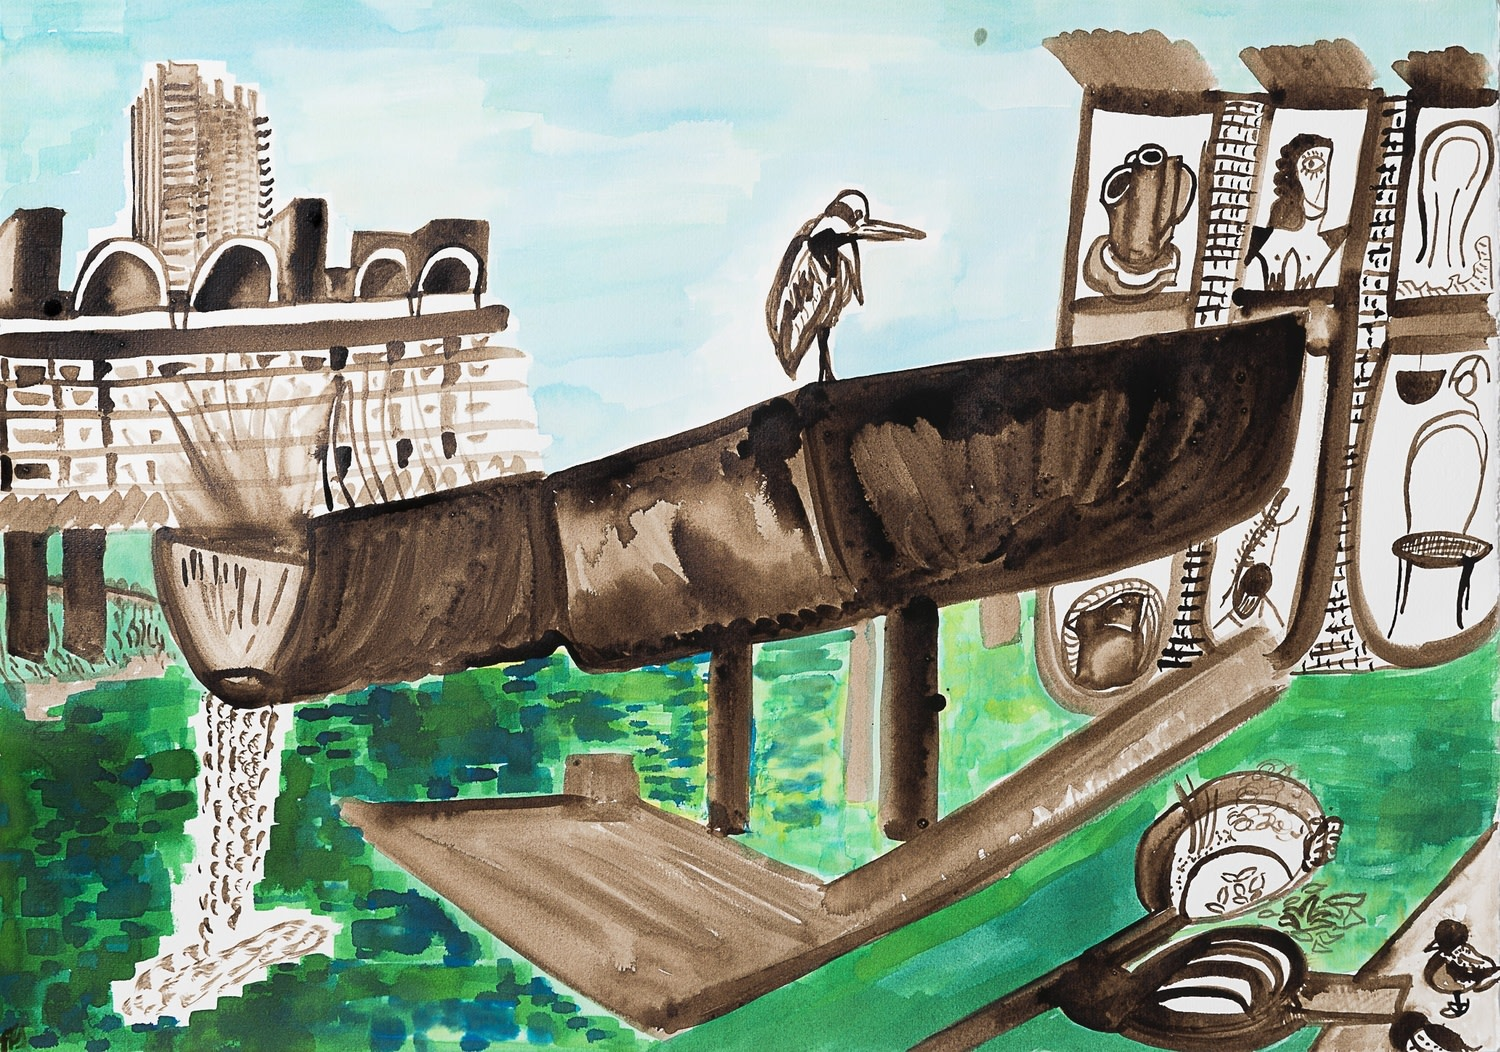 """<span class=""""link fancybox-details-link""""><a href=""""/exhibitions/36/works/image_standalone4901/"""">View Detail Page</a></span><p>Tamara Tolley</p><p><em>Bird's Eye View of the Barbican</em></p><p>walnut ink & watercolour</p><p>£1800</p><p></p><p>Judge's Choice</p><p>Selected by Kristian Day</p><p>Independent Gallerist & Curator</p>"""